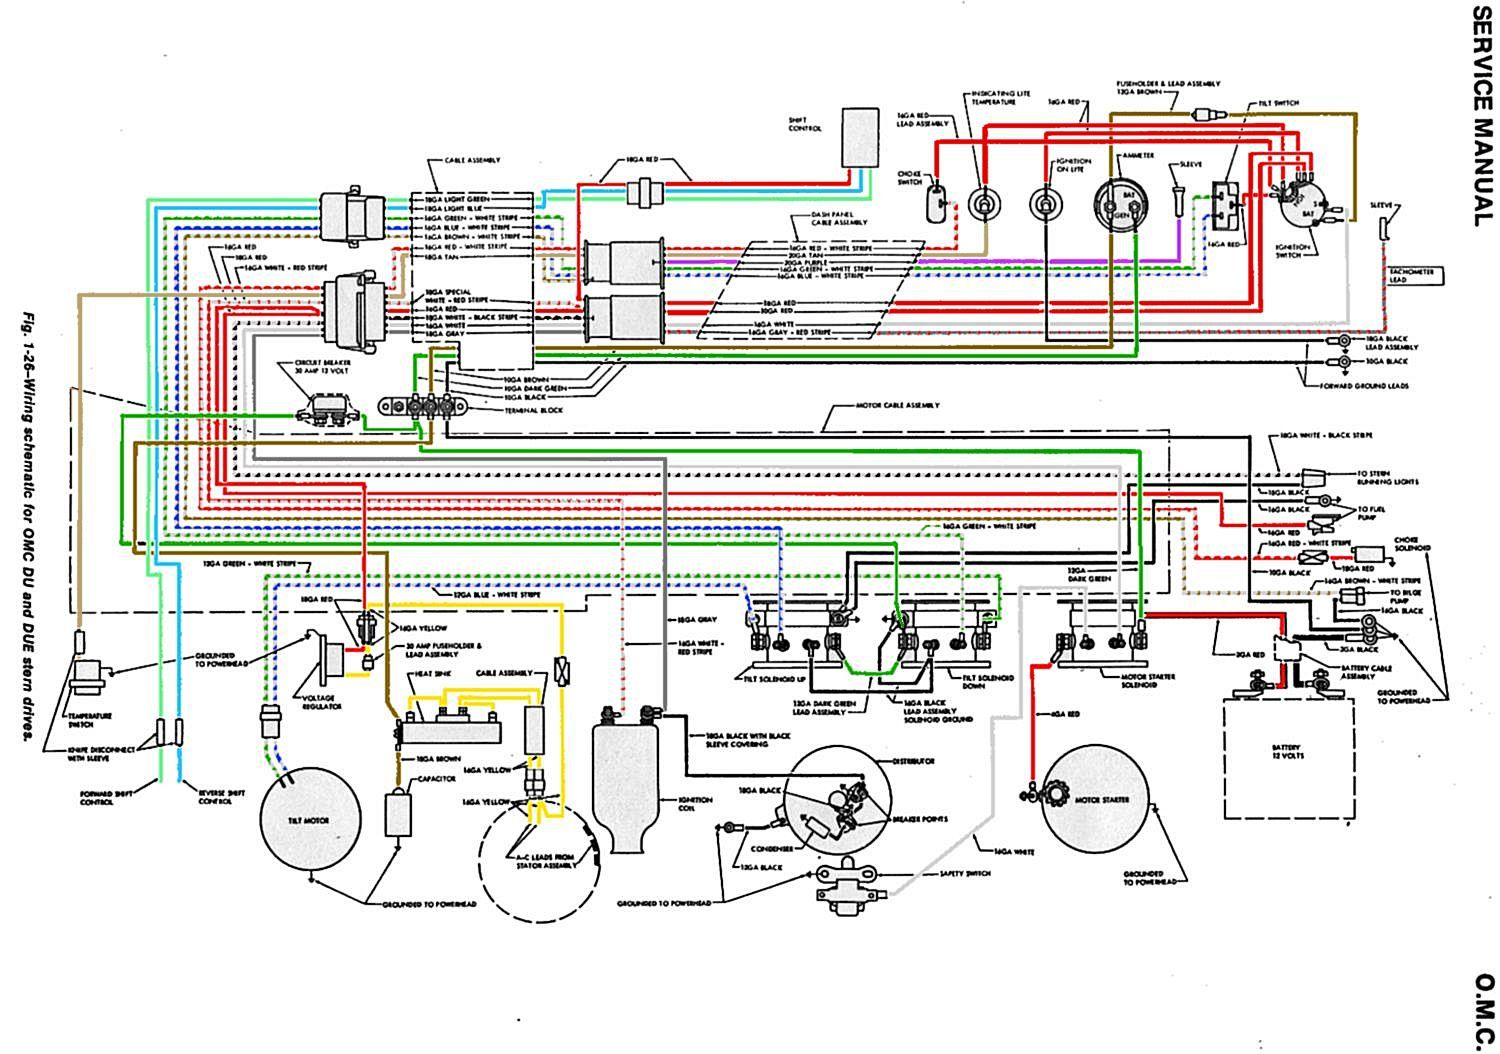 1987 Omc Wiring Diagram - Wiring Diagram Img Omc Zylinder Wiring Diagrams on